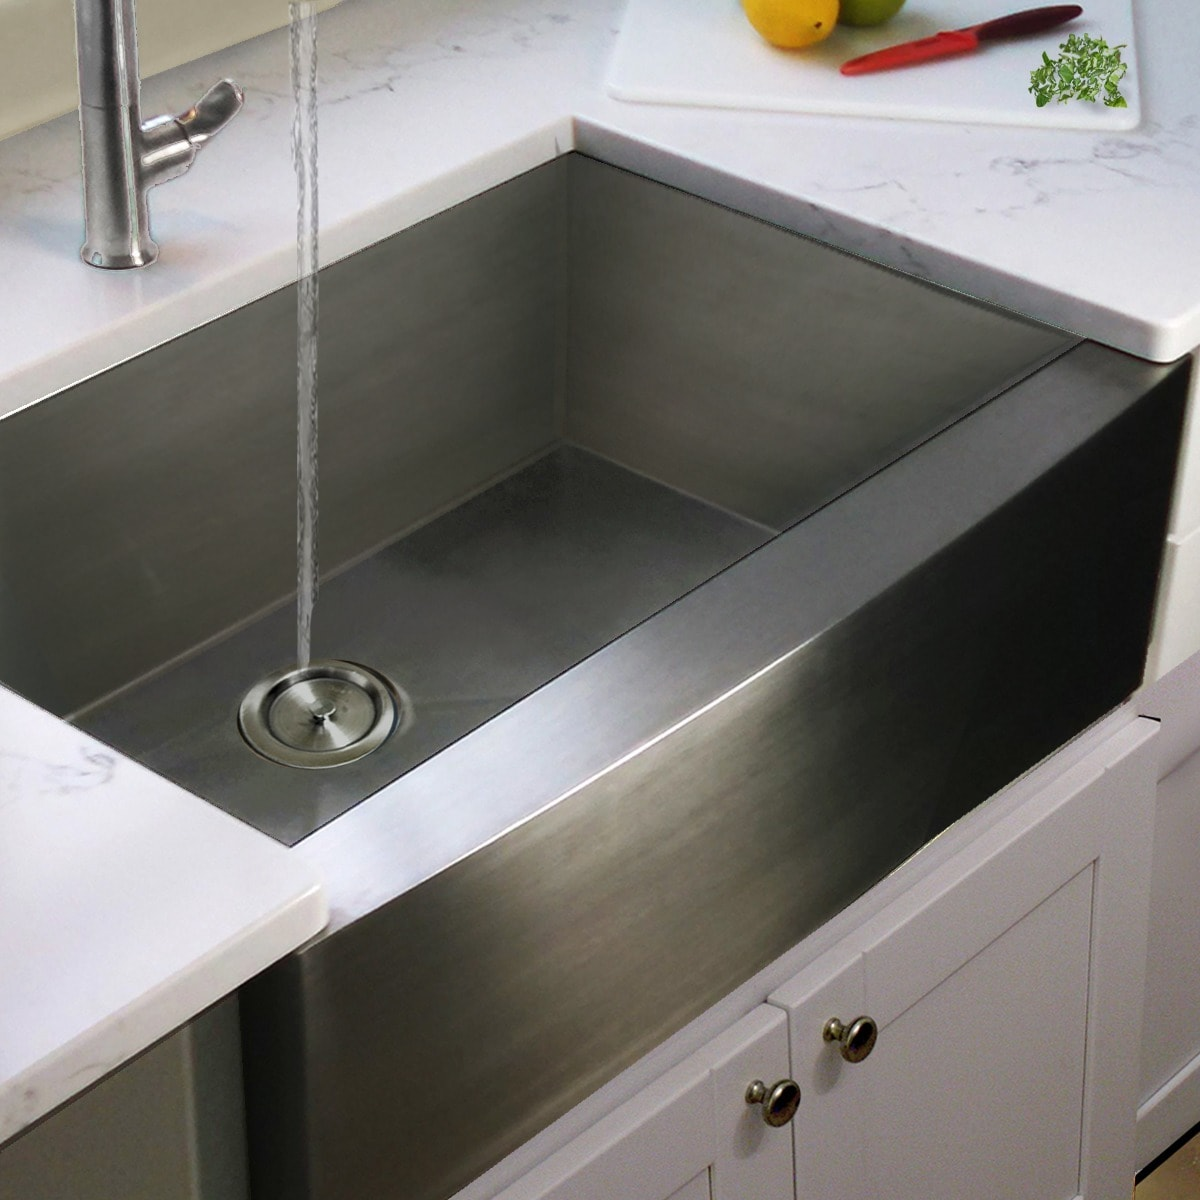 Overstock Farmhouse Sink Stainless Steel Single Bowl Apron Farmhouse Kitchen Sink